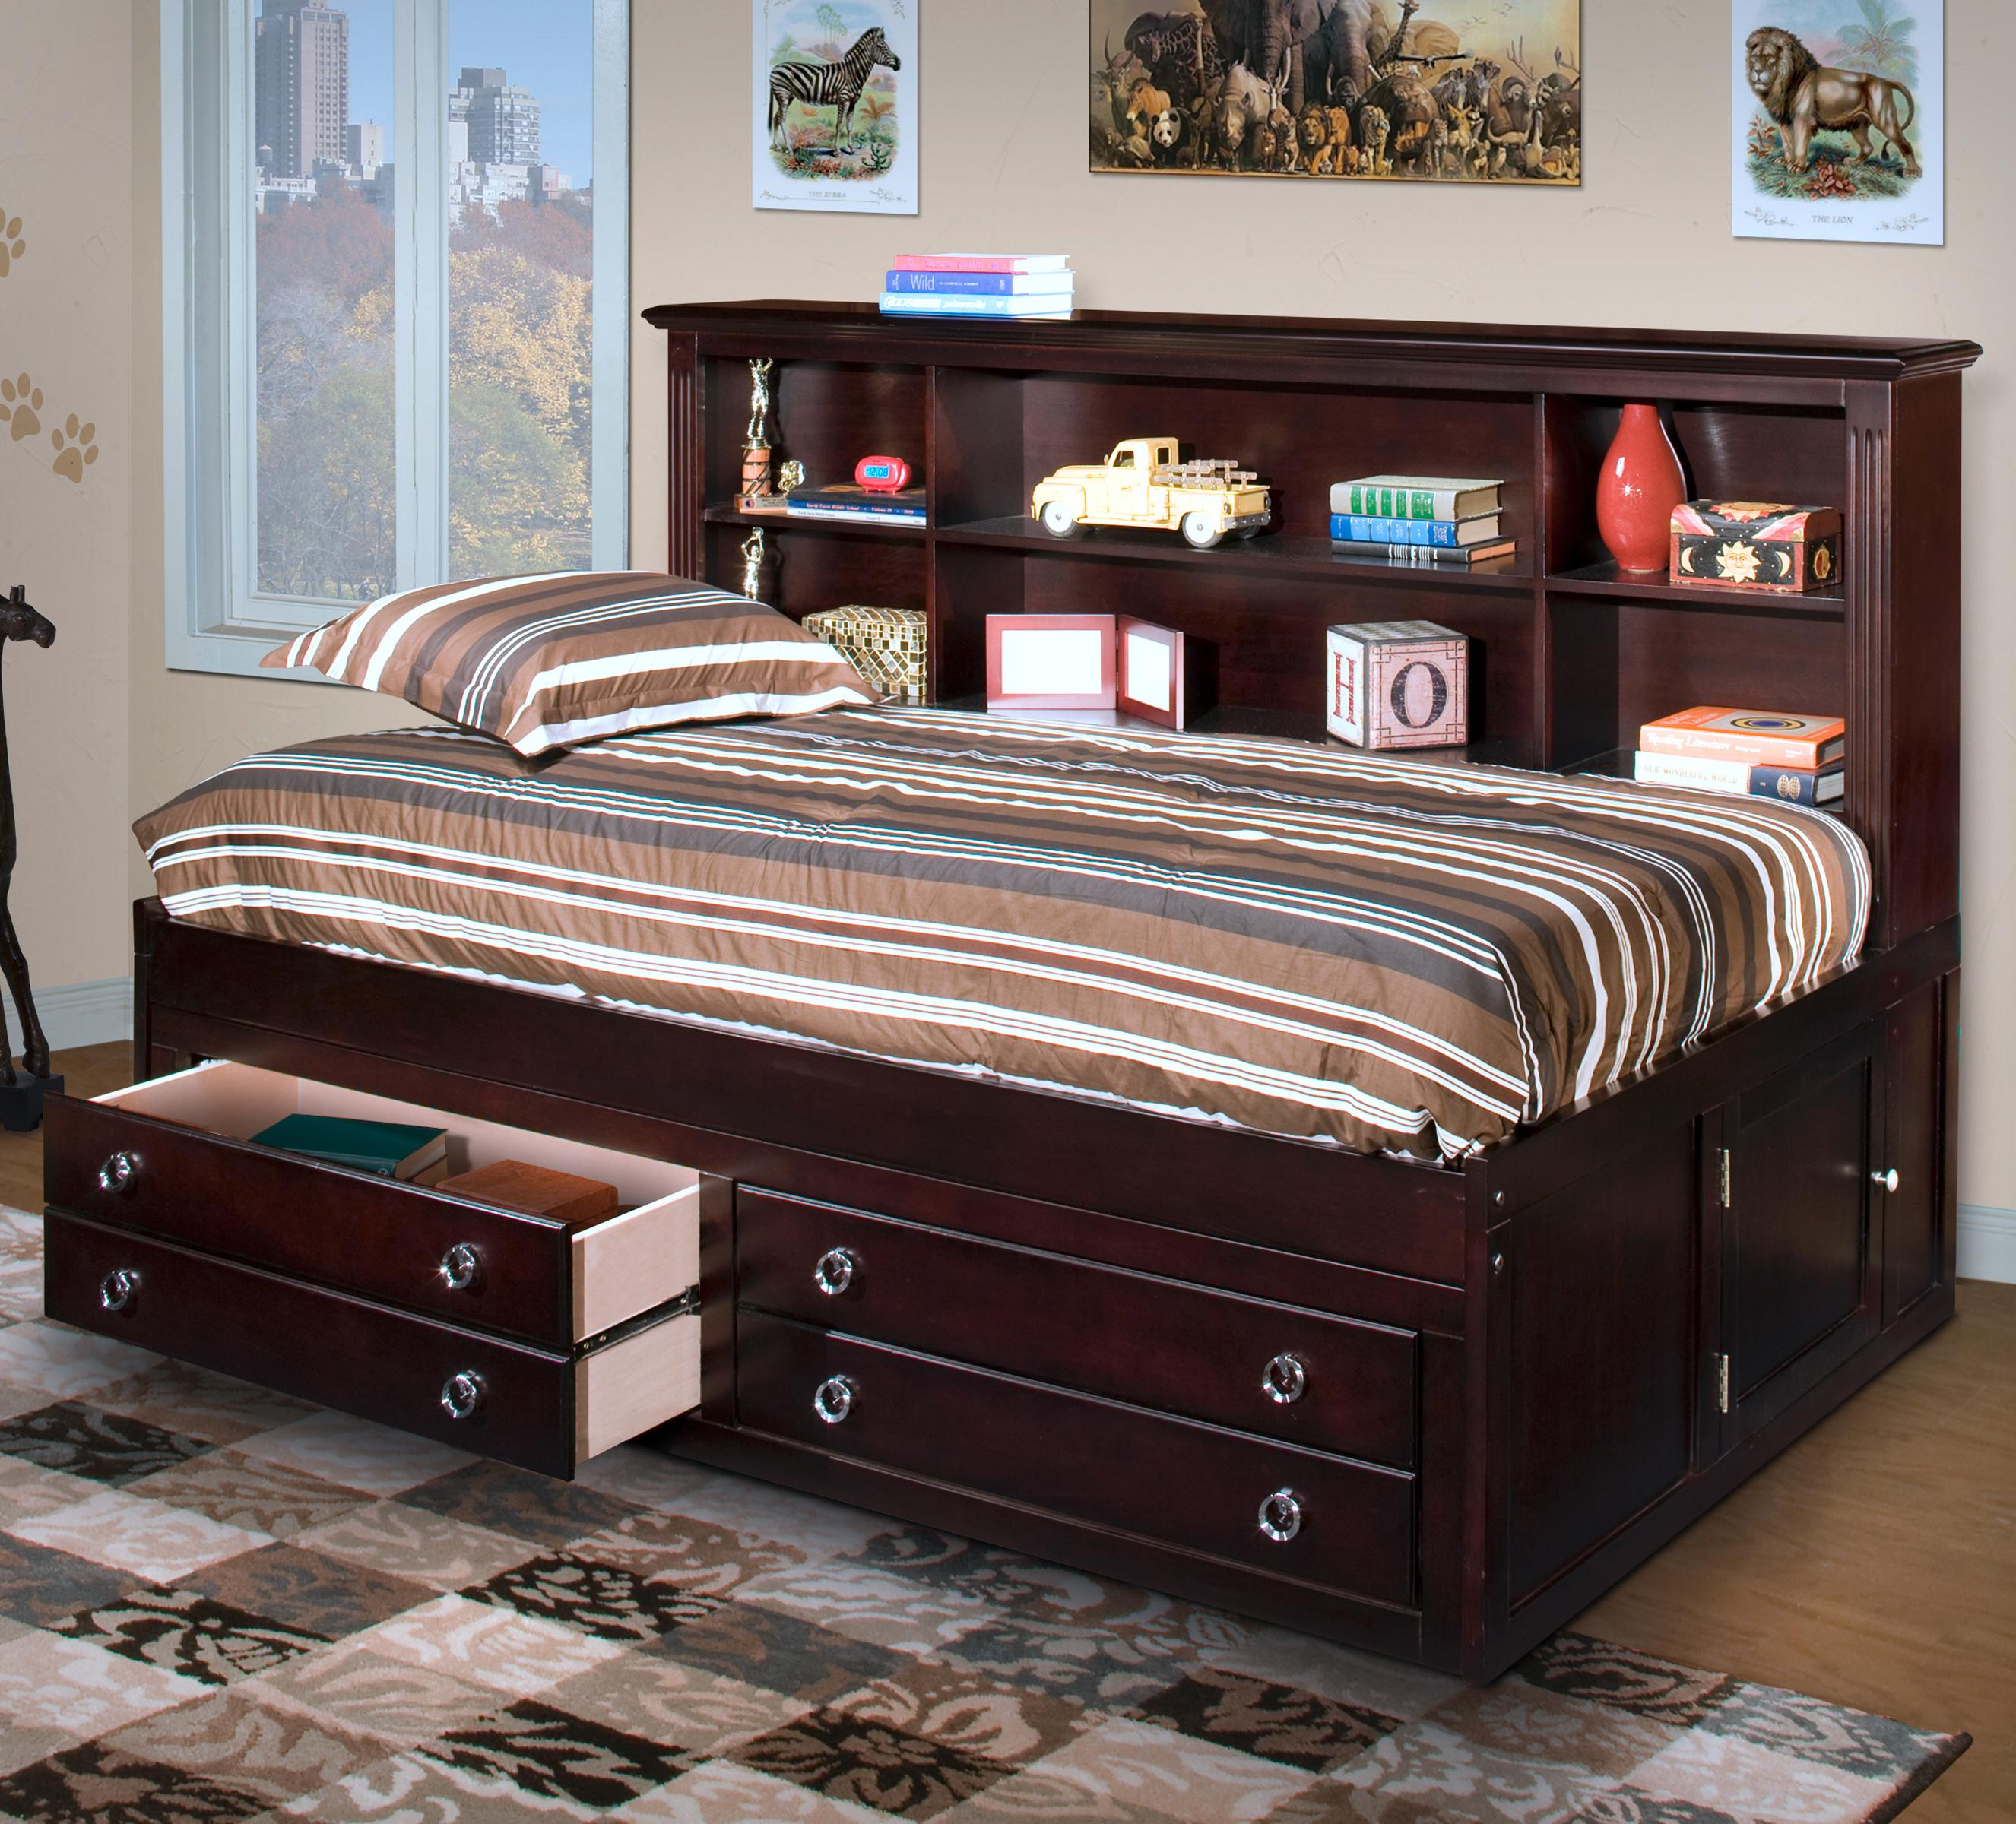 New Classic Victoria Twin Lounge Bed - Item Number: 05-623-512+532